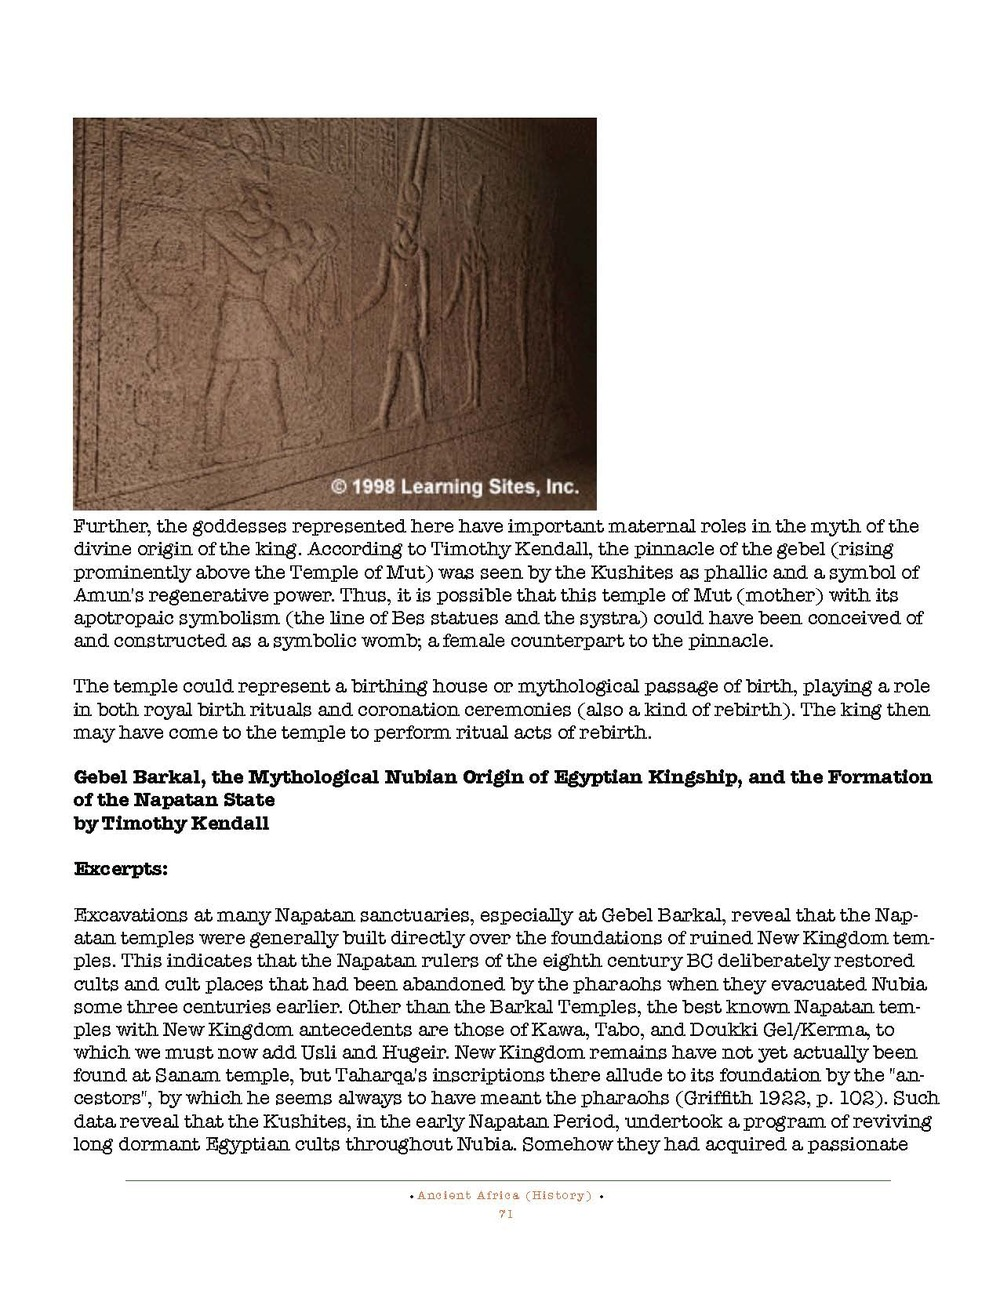 HOCE- Ancient Africa Notes_Page_071.jpg